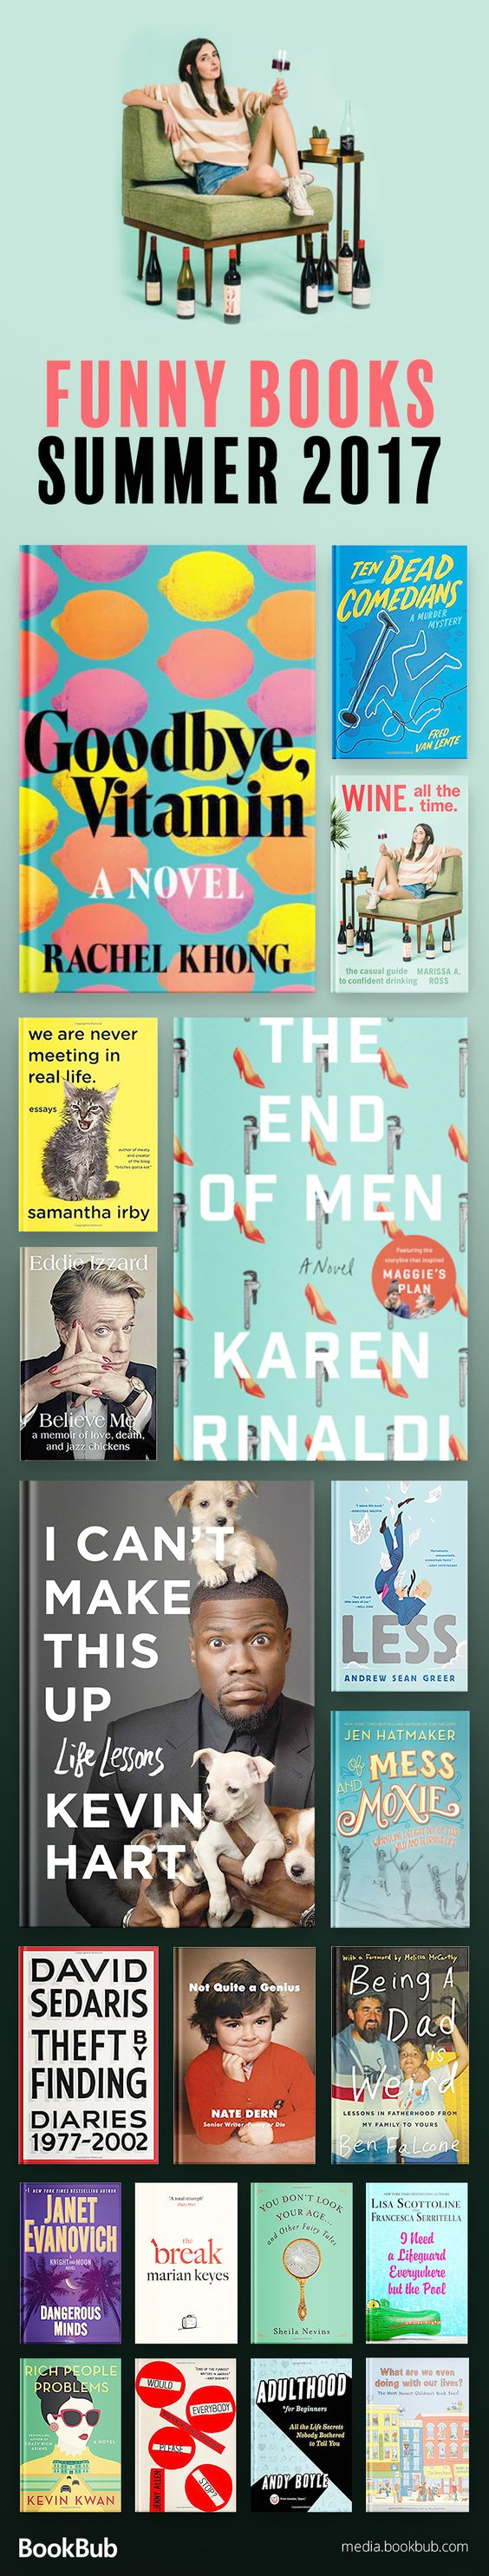 19 funny books to read that are sure to make you laugh. These funny books for women and for adults are great if you're looking for some humor!